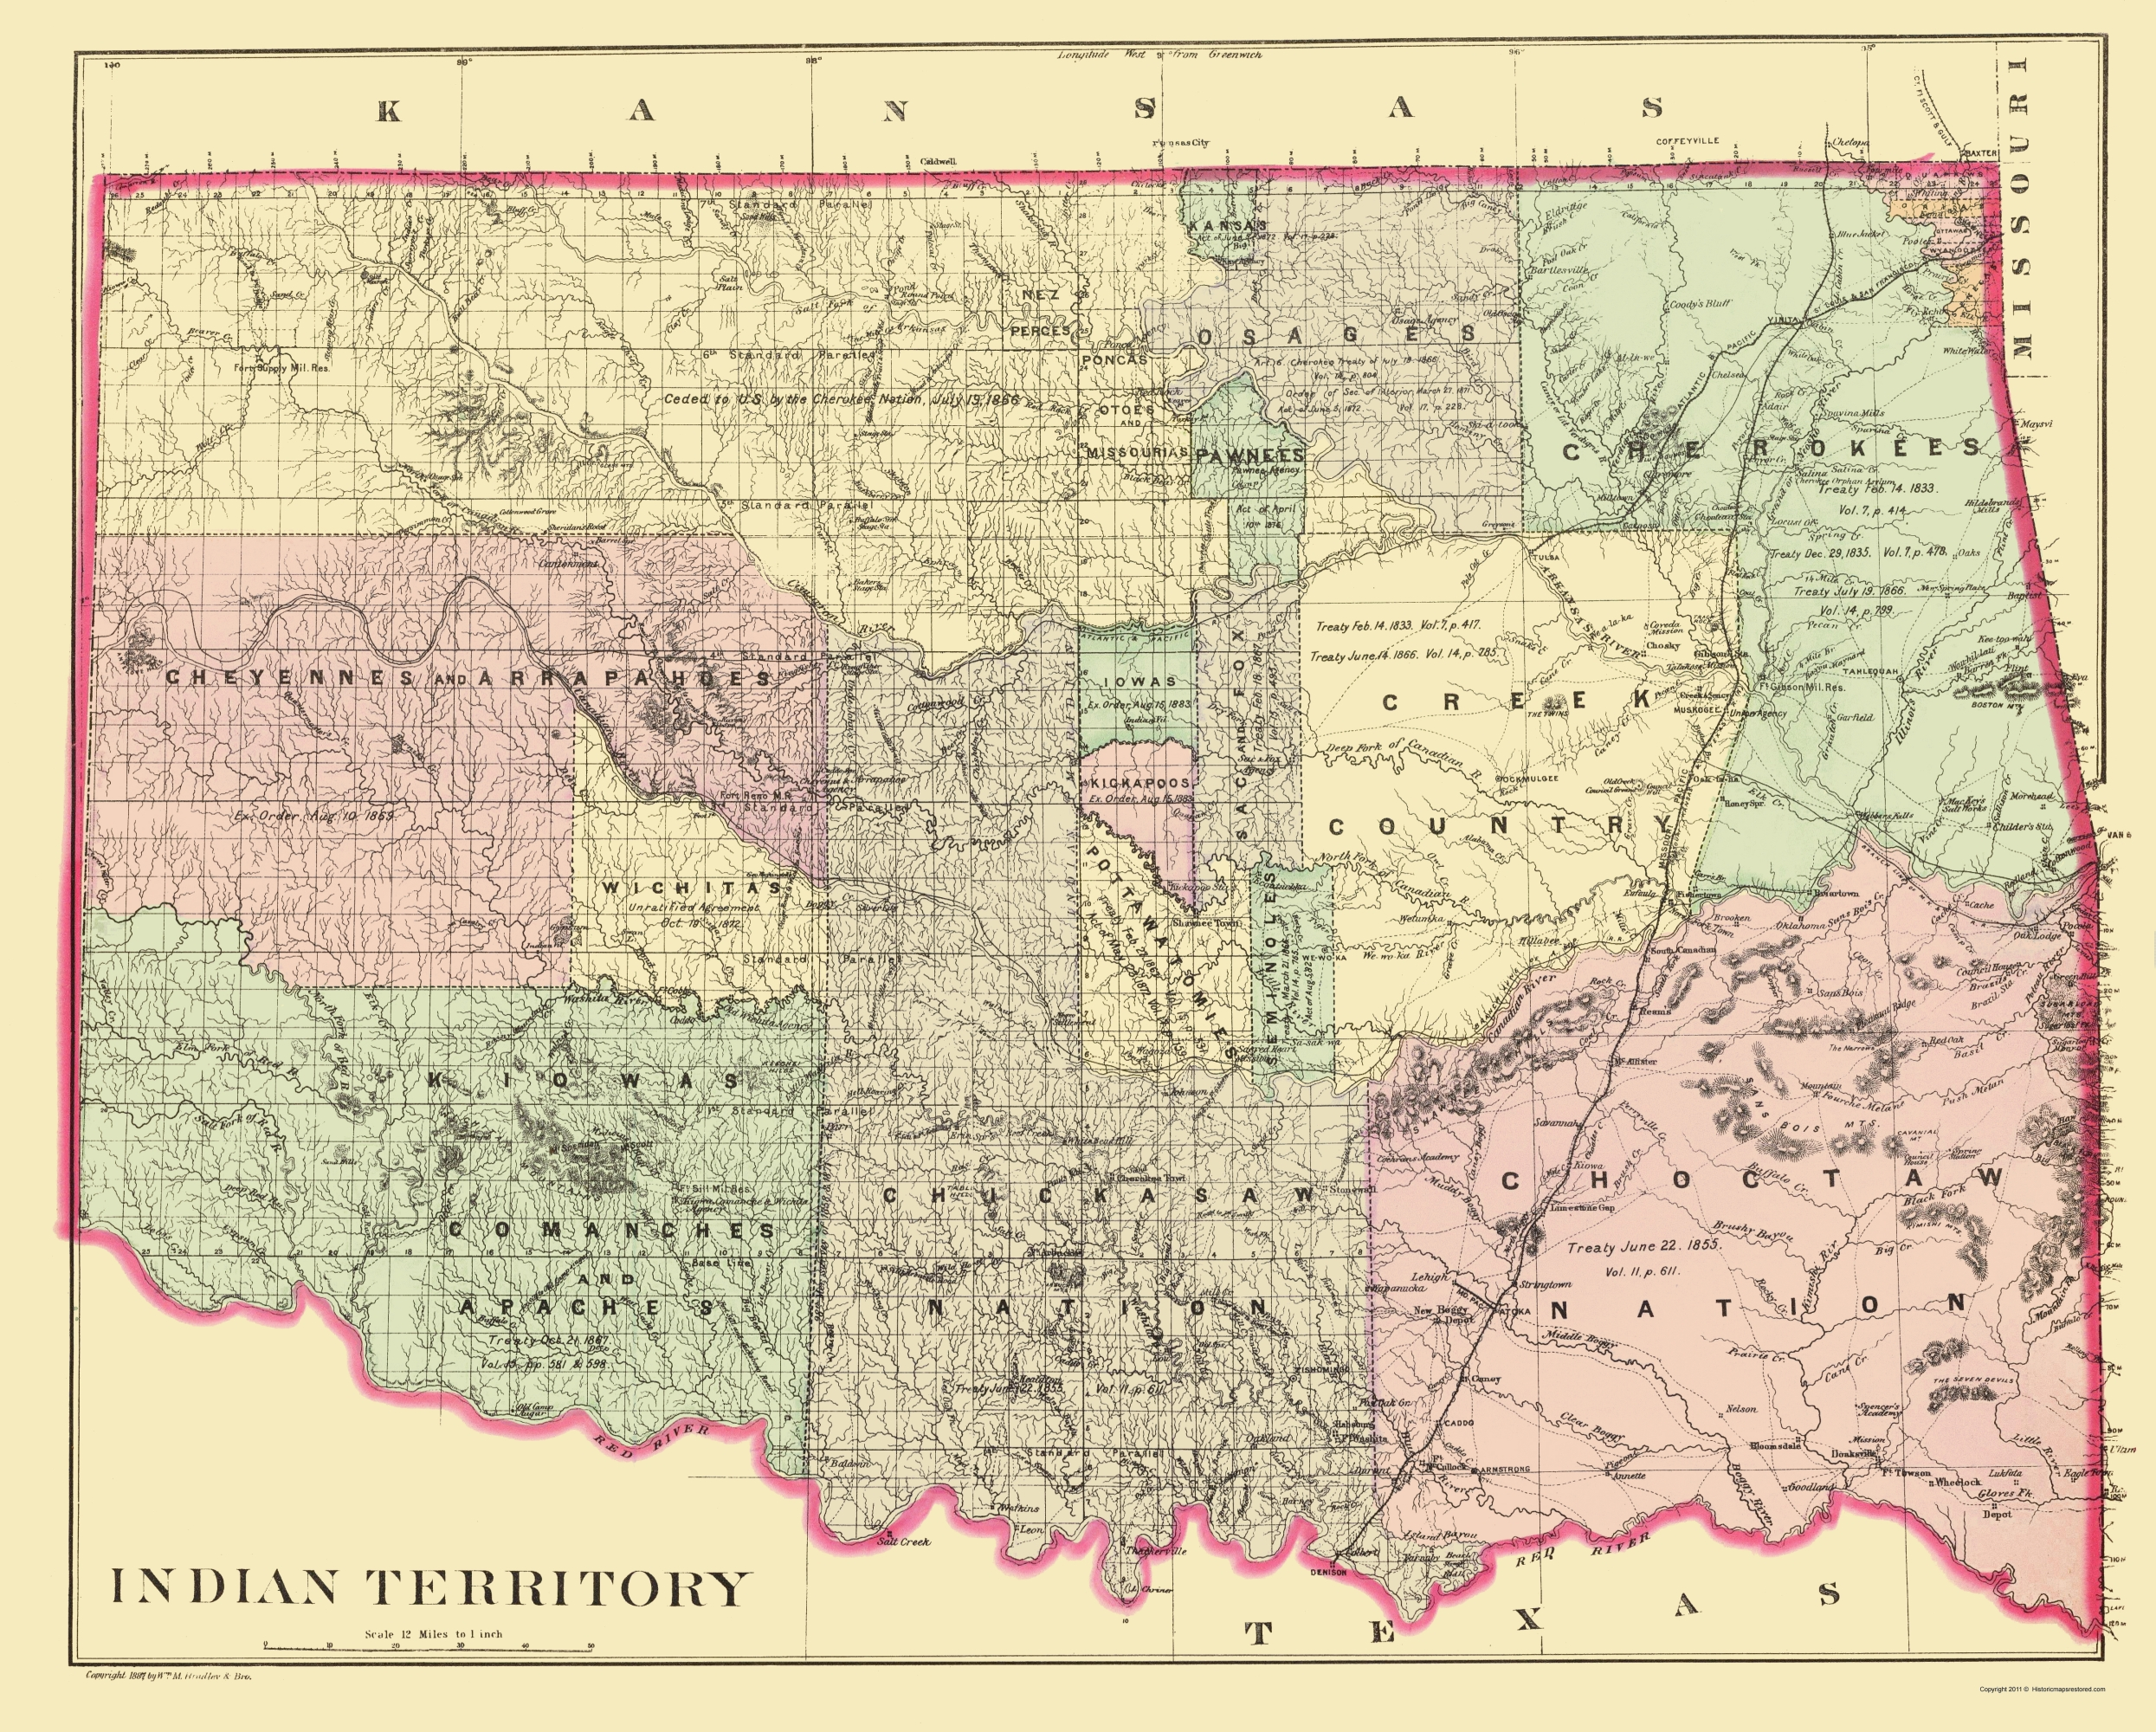 Old State Map - Oklahoma Indian Territory - dley 1887 - 23 x 28.63 on united states and its territories, united states overseas territories, map of puerto rico, map of usa with state boundaries, map of the first 16 states, map of norway territories, number of us territories, map with capitals of australia, map of us sales, map of missouri and bordering states, map of israel territories, us map territories, map of ancient roman territories, map of usa in 1783, map of us in late 1800s, map of colonial territories, map of mexico, map of u.s. possessions, map united states 1890, map of cherokee territories,